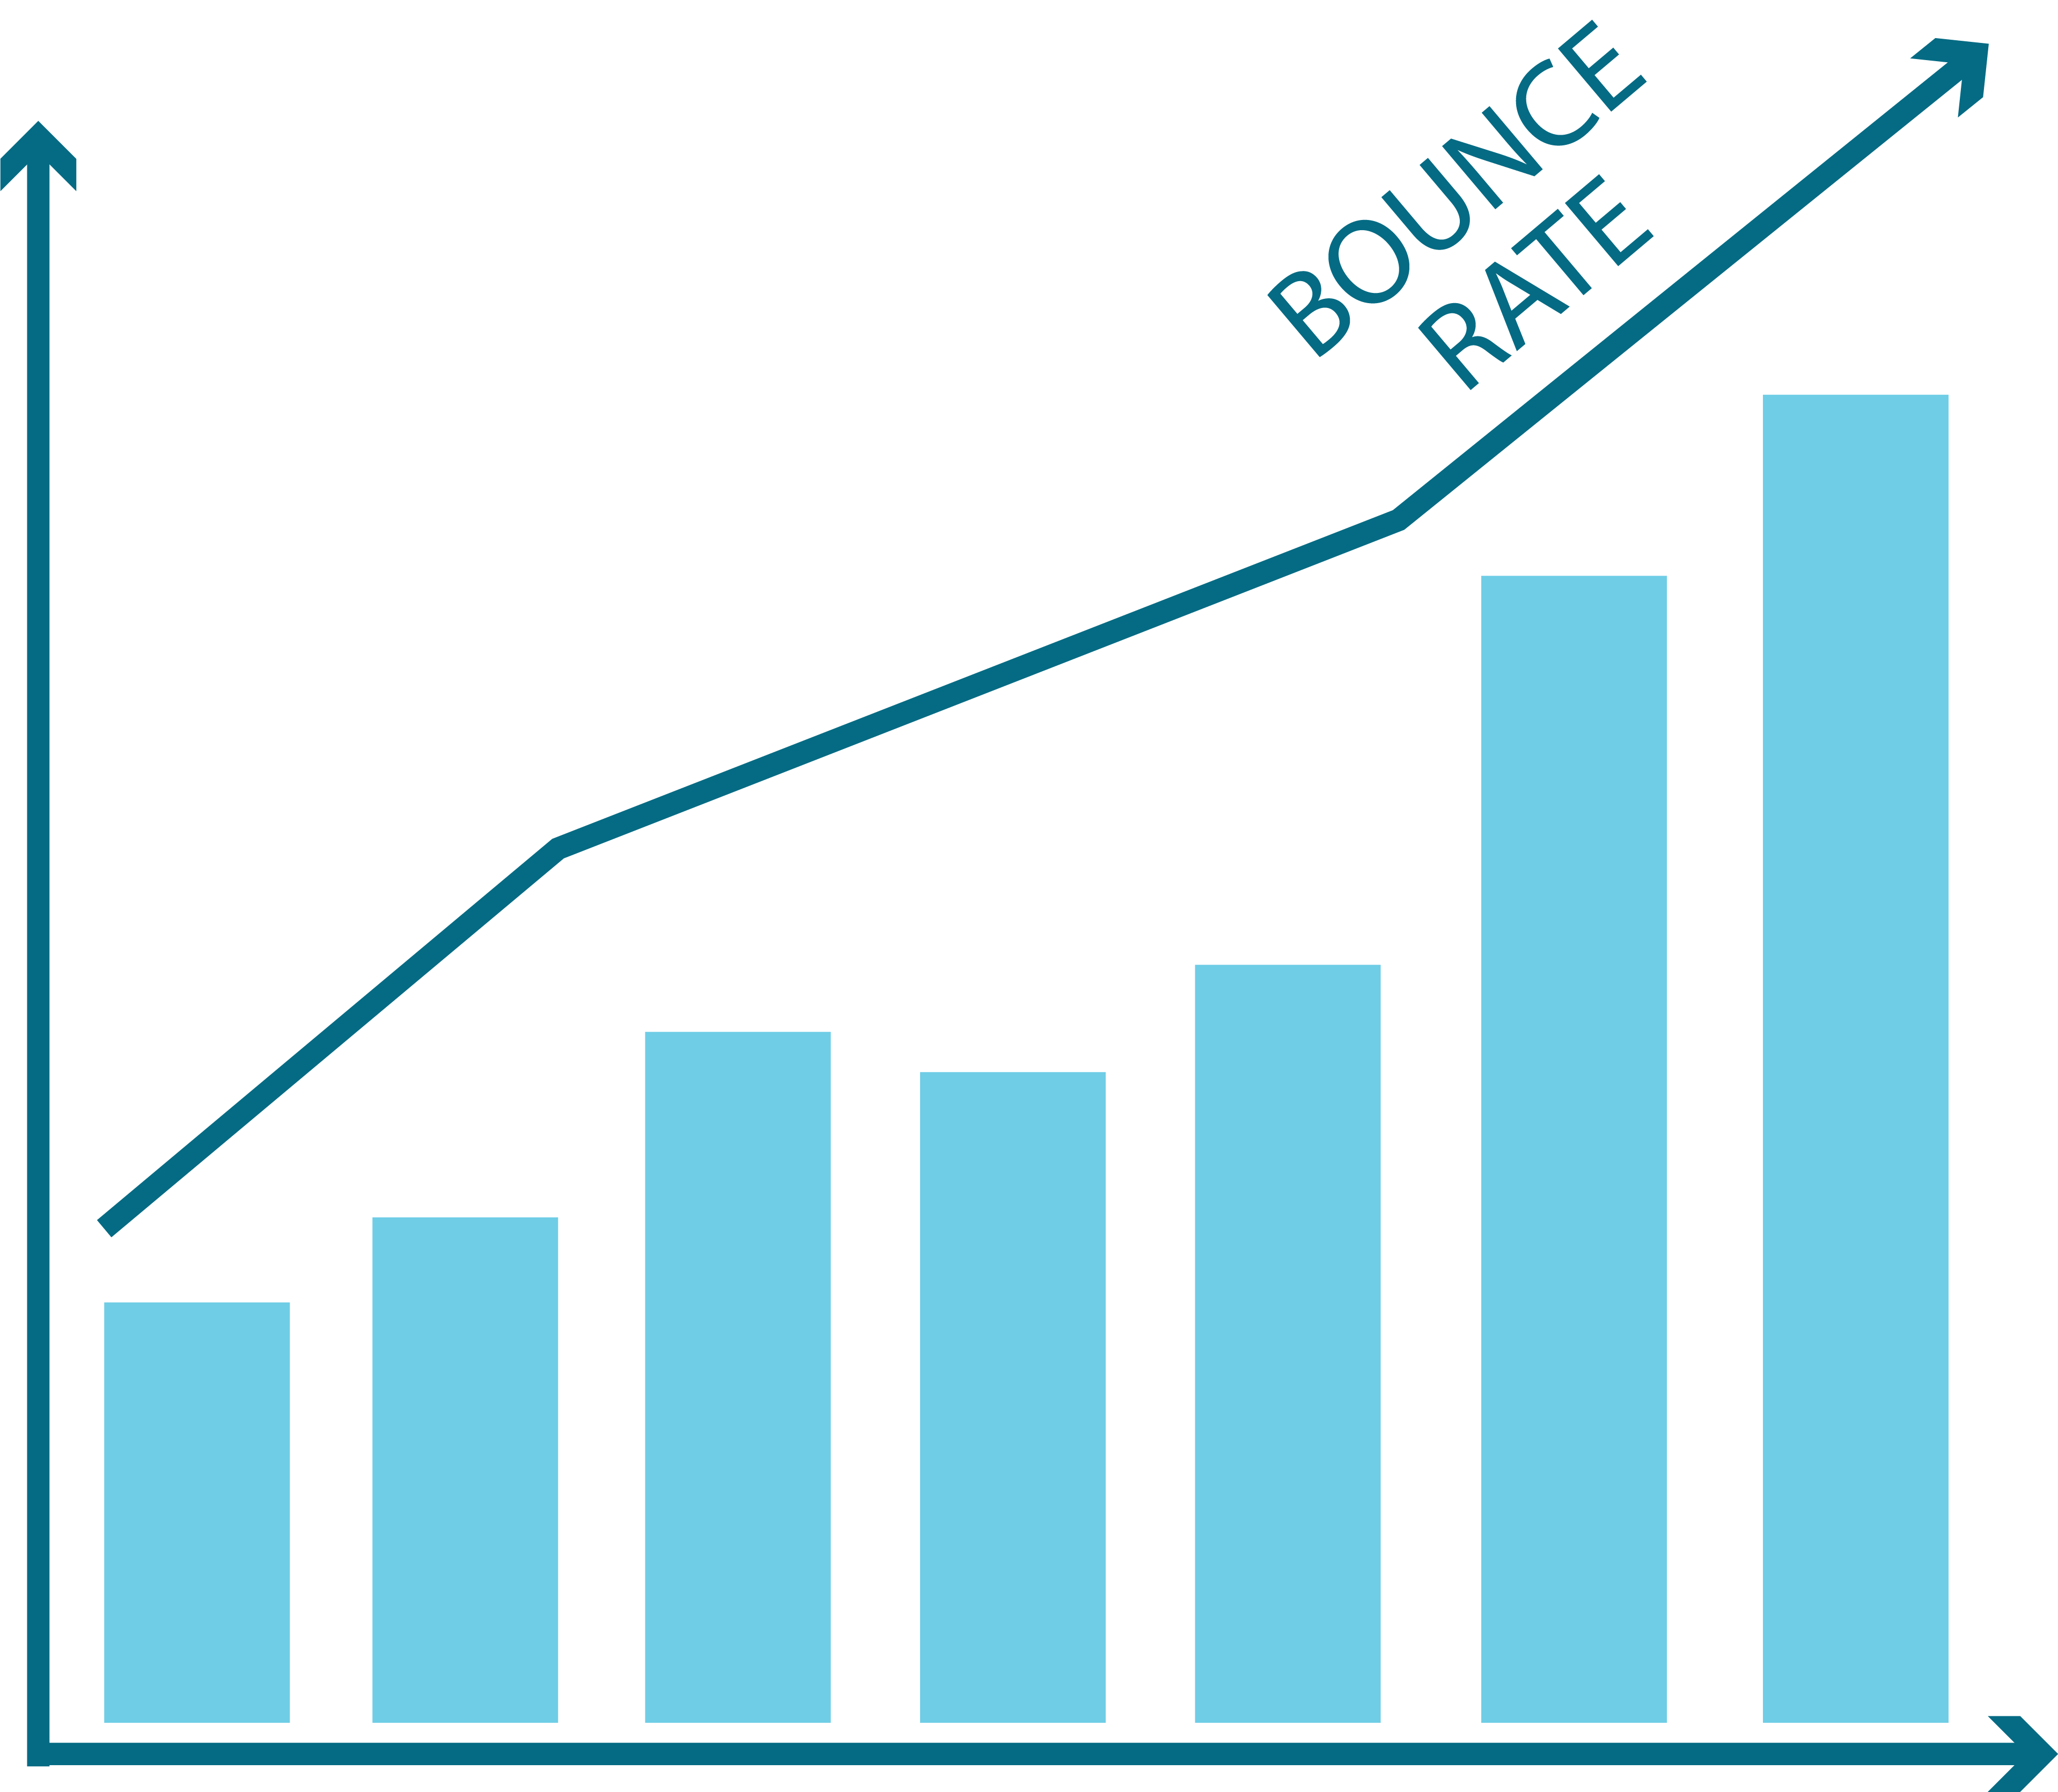 bar graph showing a high bounce rate - bounce rate and exit rate